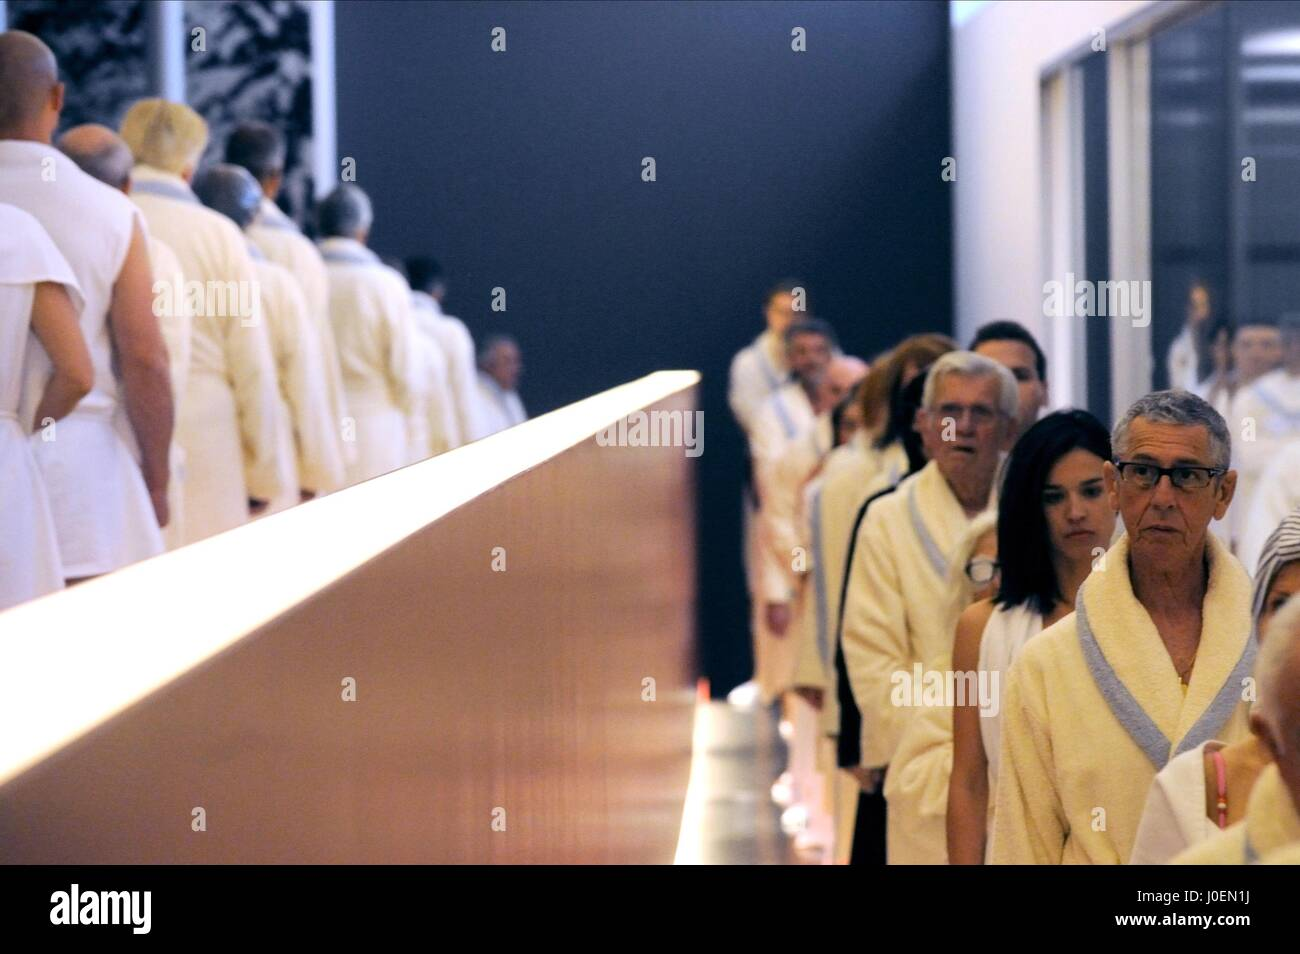 HEALTH SPA GUESTS YOUTH (2015) - Stock Image